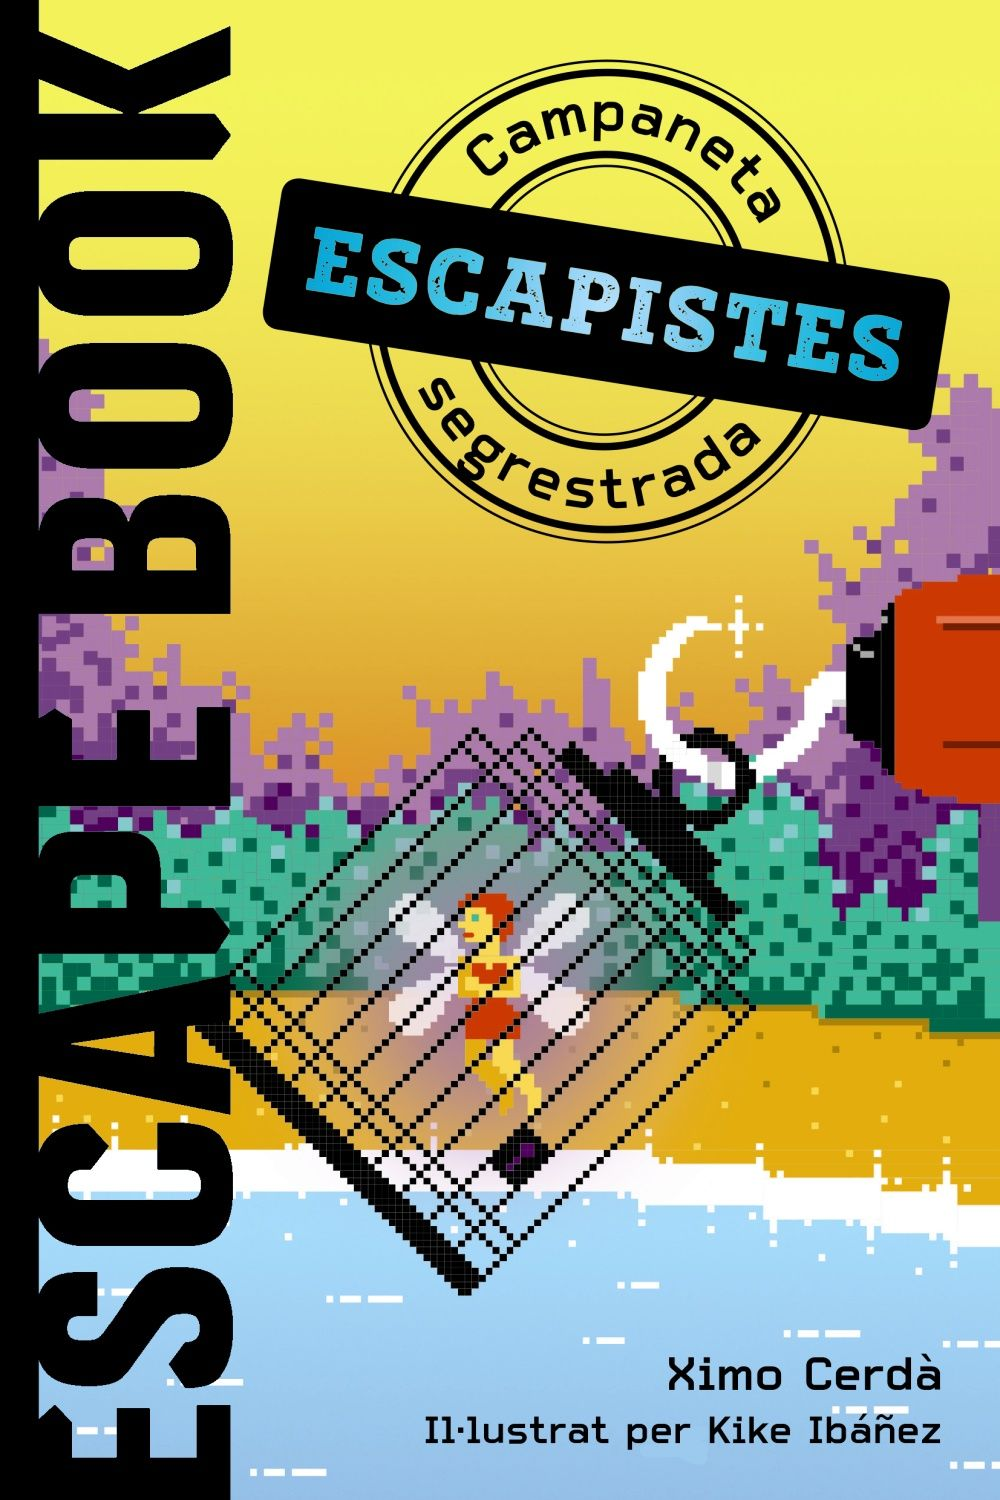 ESCAPE BOOK ESCAPISTES CAMPANETA SEGRESTADA